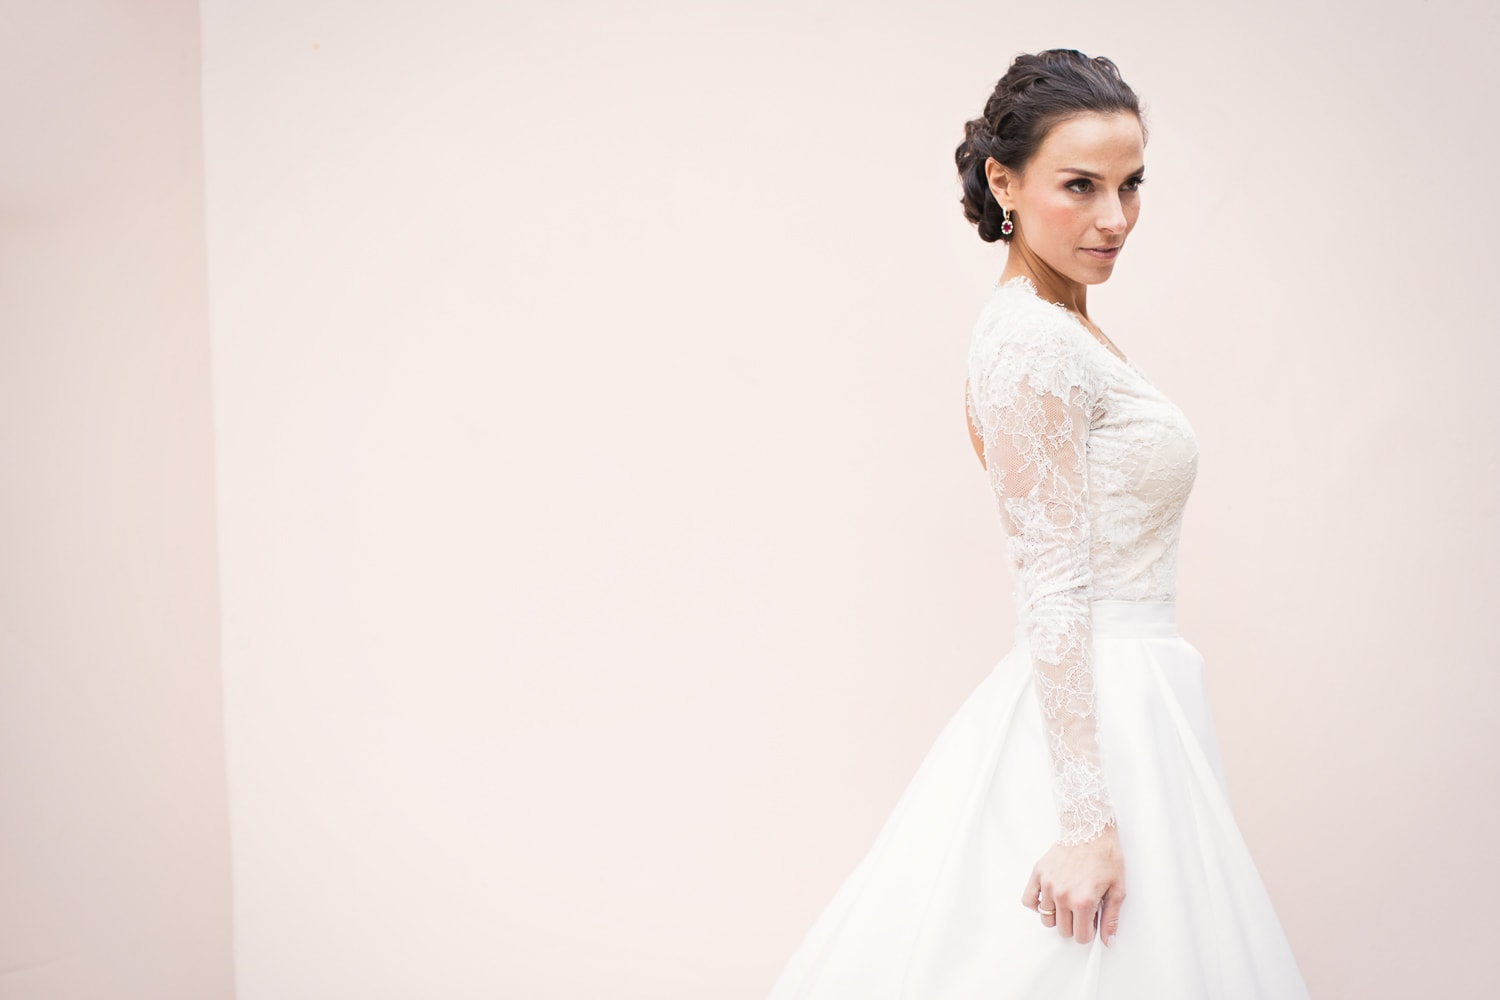 Glamorous Monique Lhuillier wedding gown with sleeves and pockets at the Hotel Bel-Air